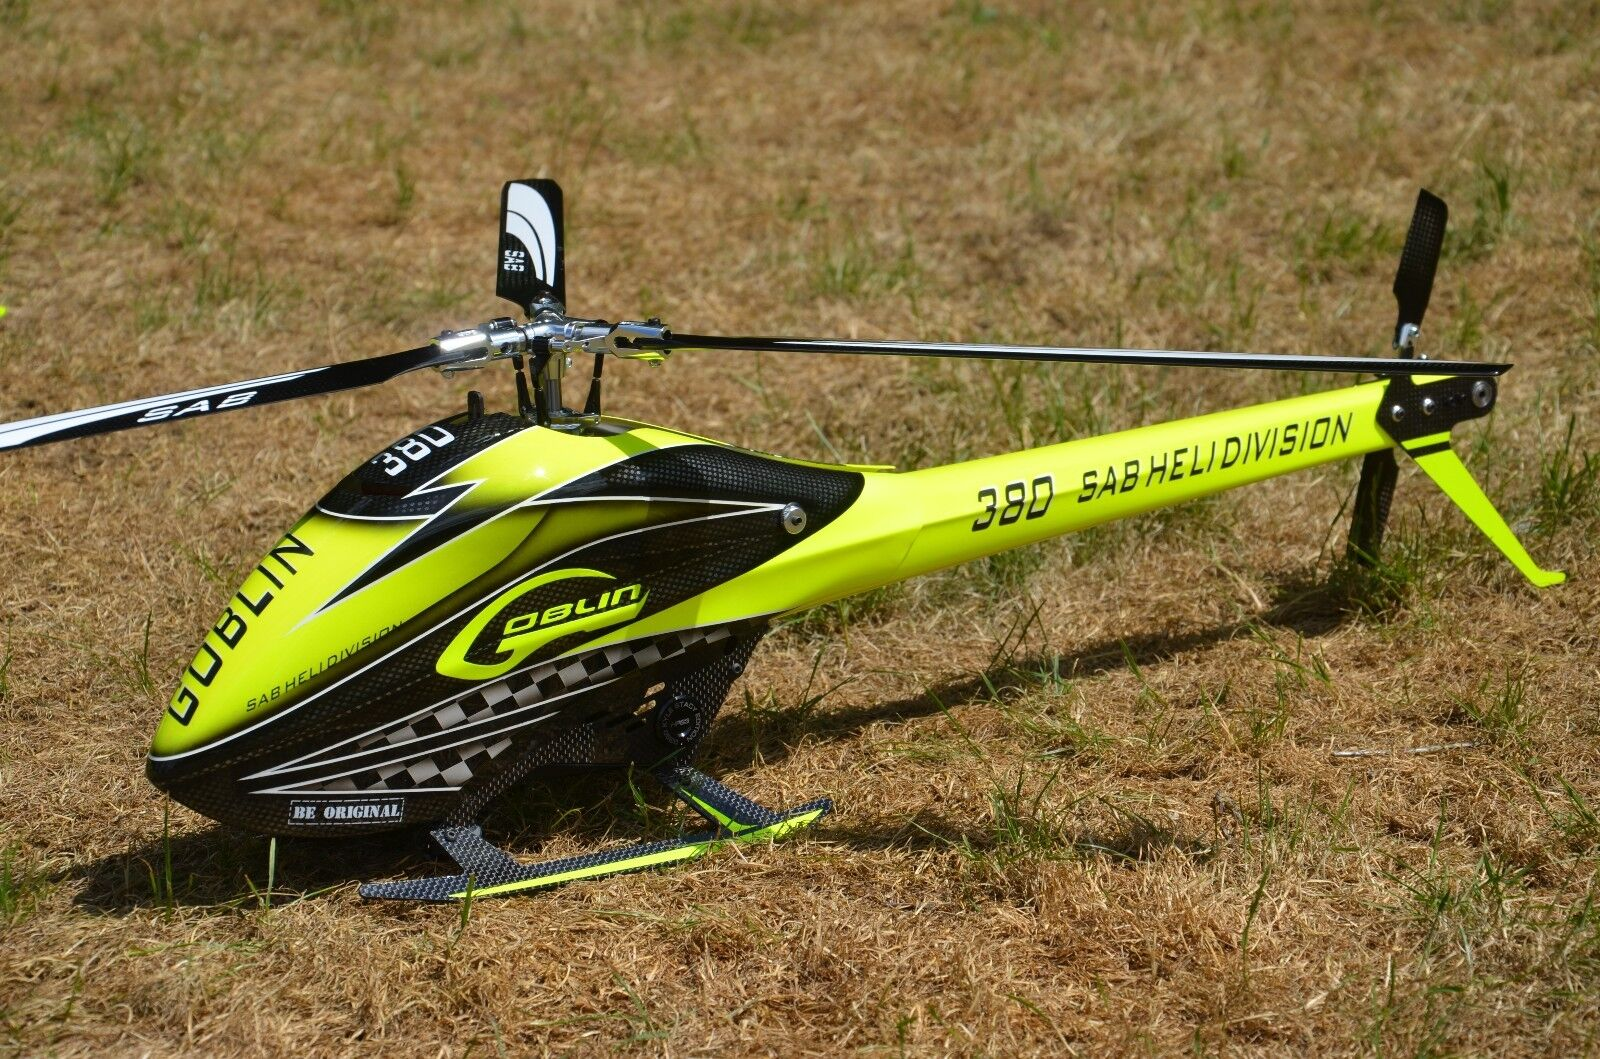 Sab Goblin 380 Ready to Fly RTF 3 Leaves Kyle Stacy Design + Axon + Mz 24 Pro